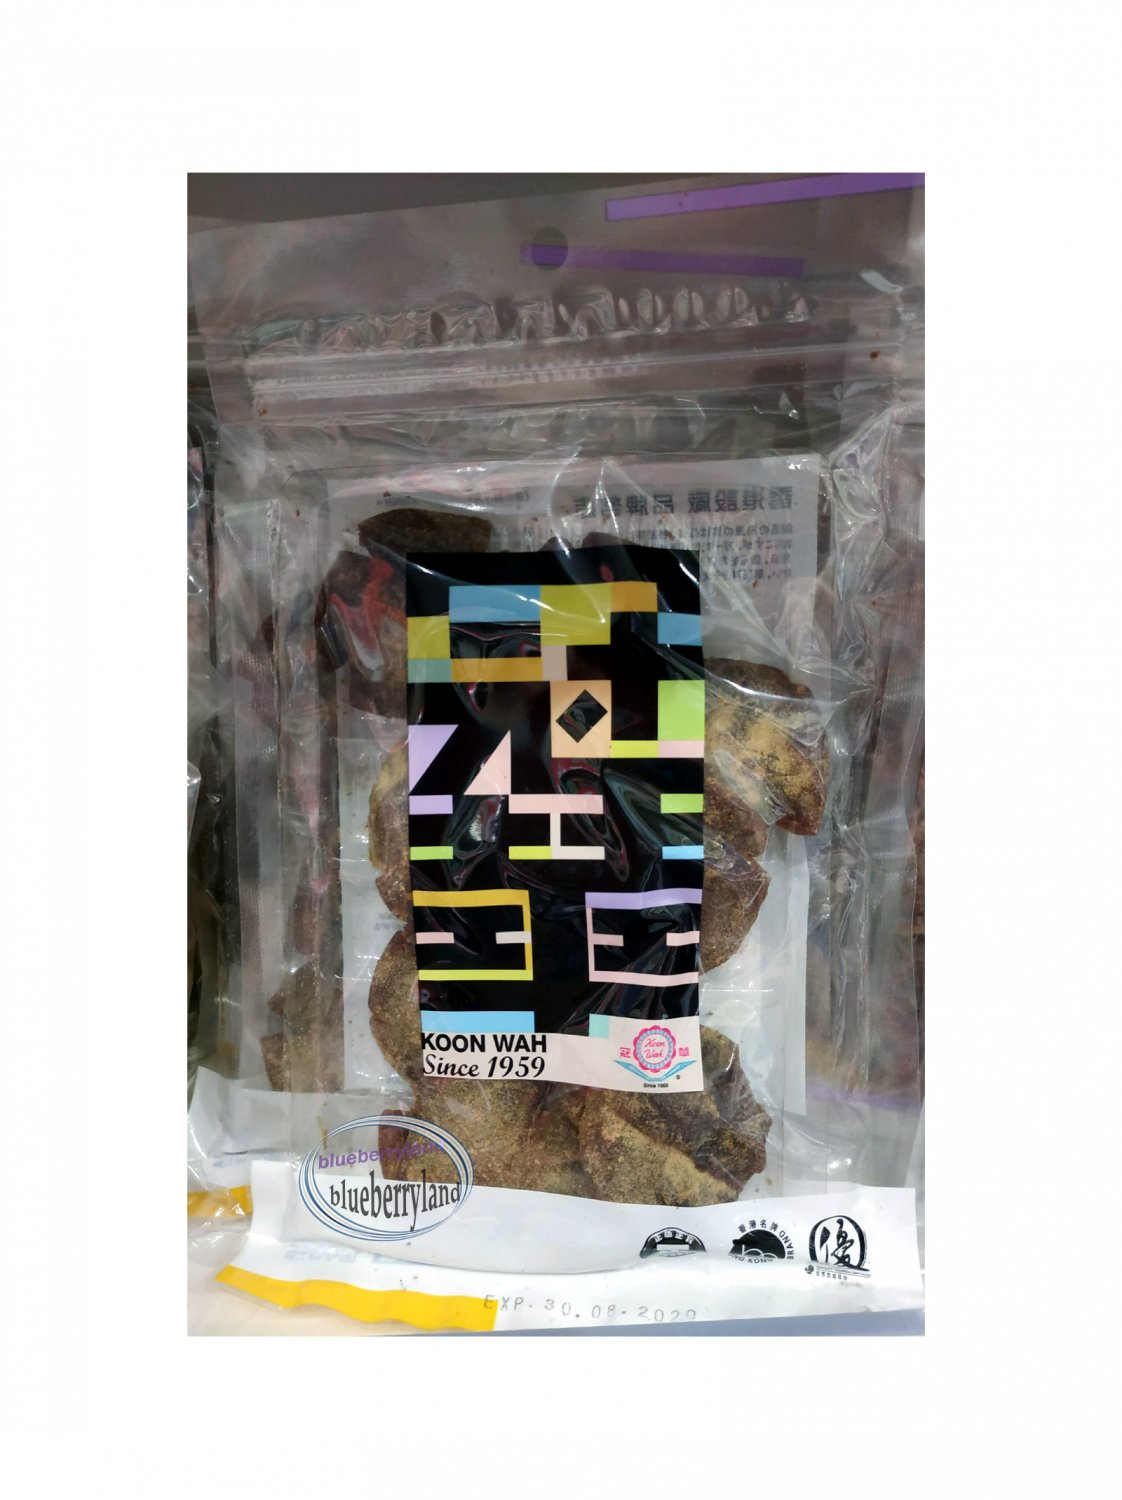 Hong Kong Koon Wah Preserved Licorice Lemon Food Snack �港����檸檬